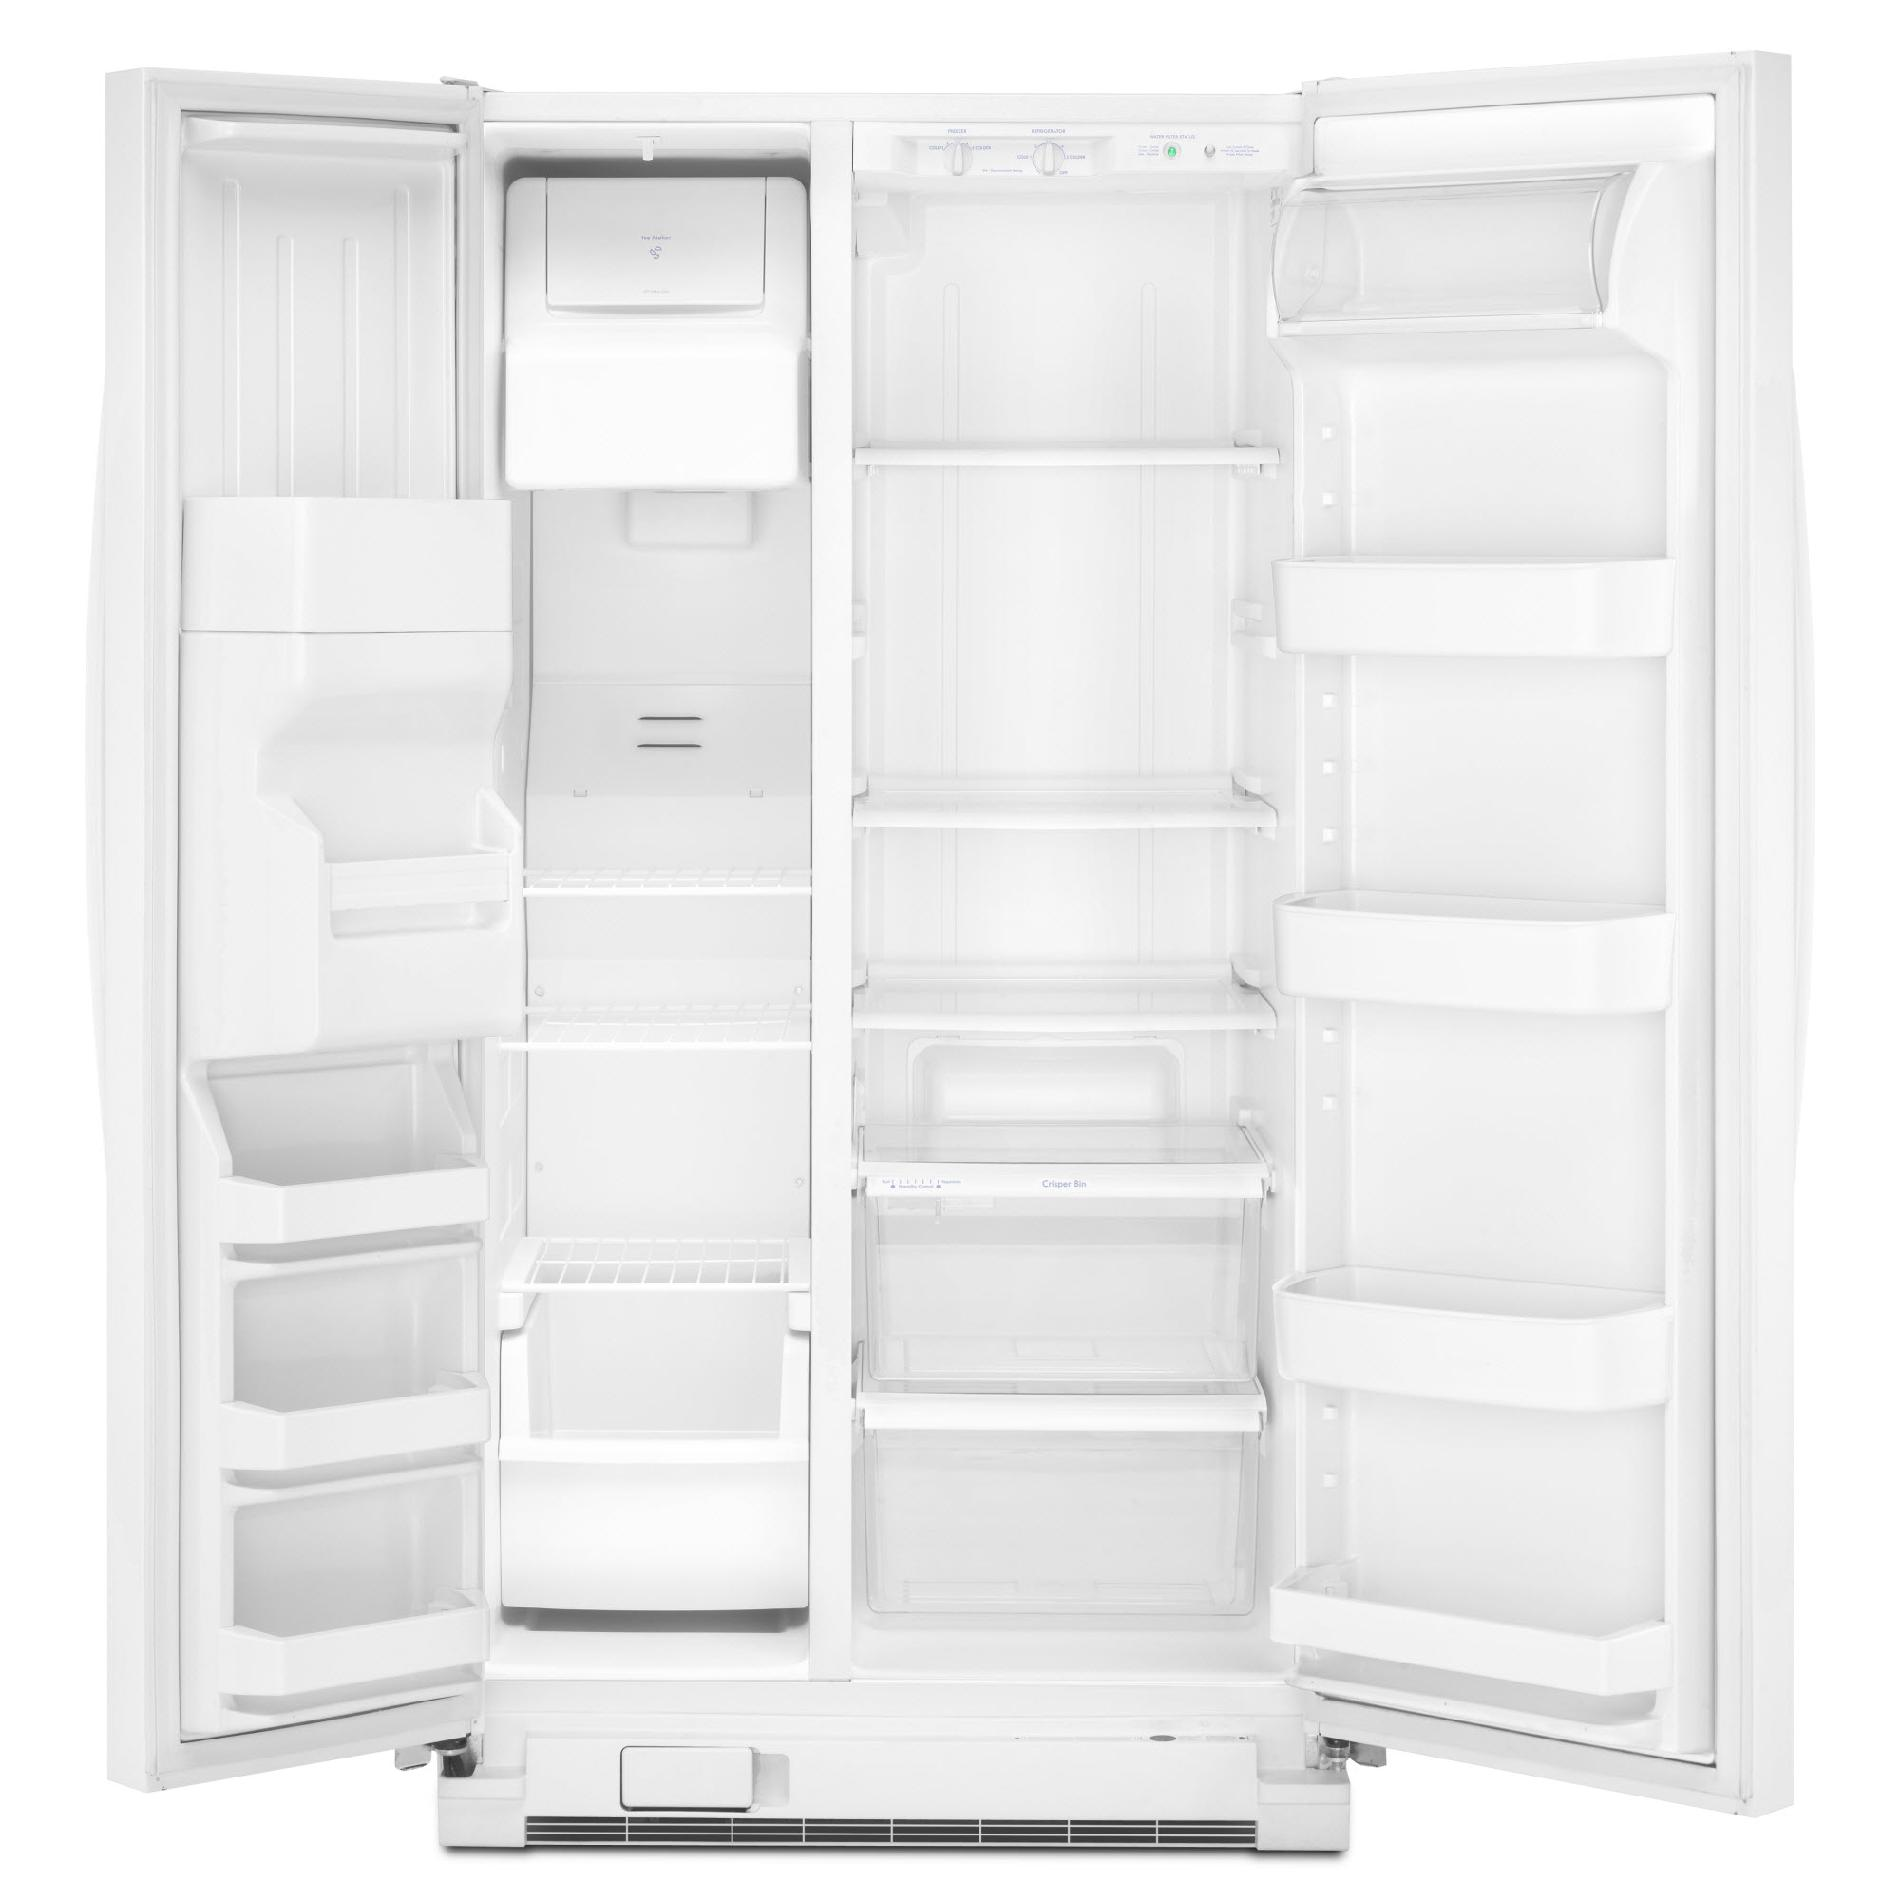 Kenmore 25.4 cu. ft. Side-by-Side Refrigerator - White